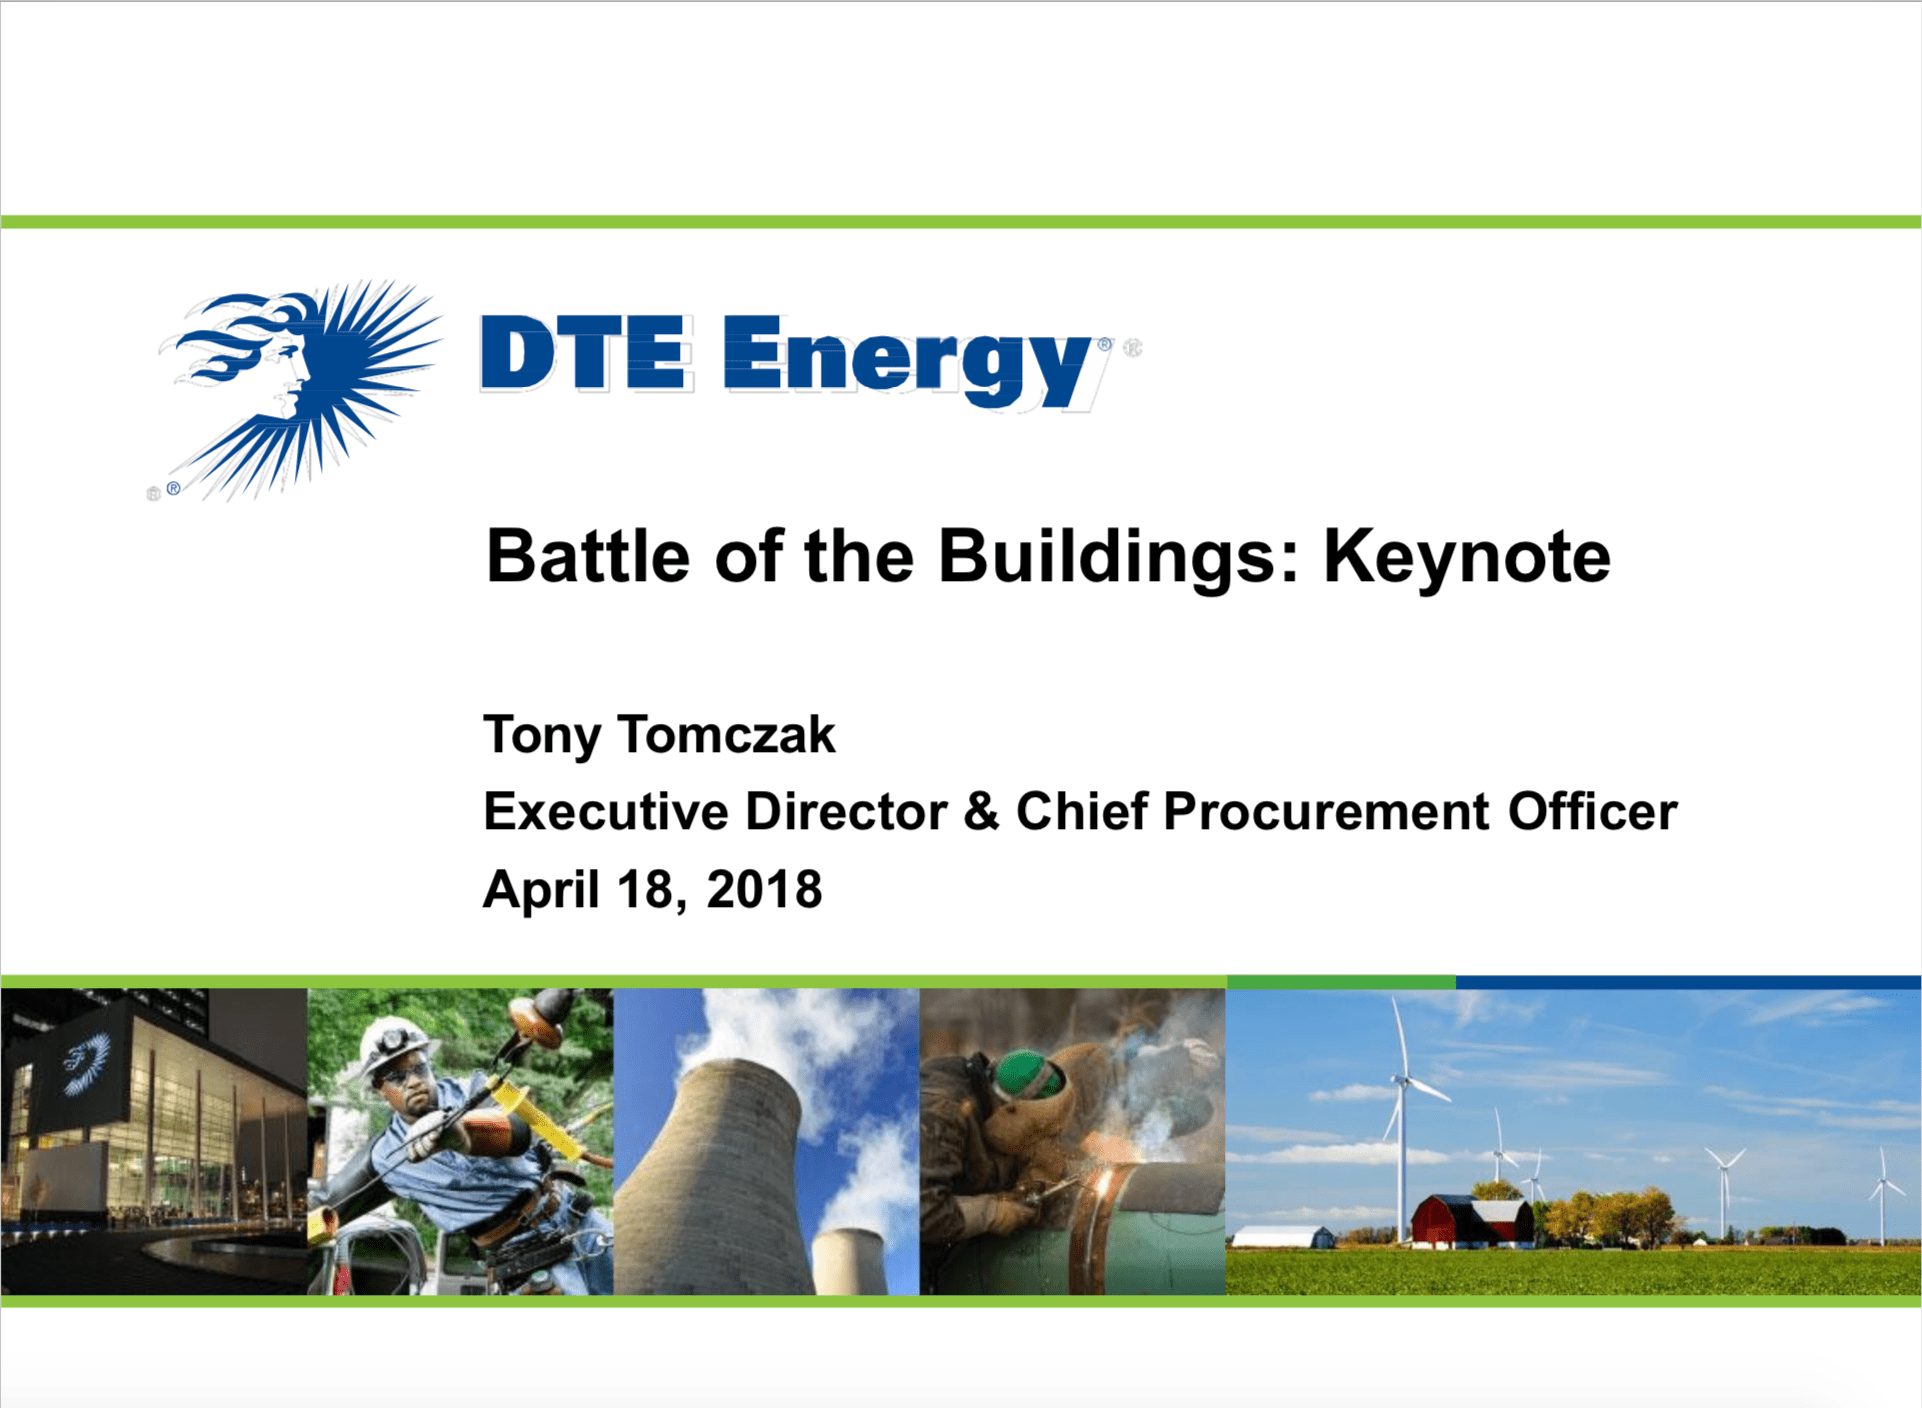 DTE Energy - Tony Tomczak